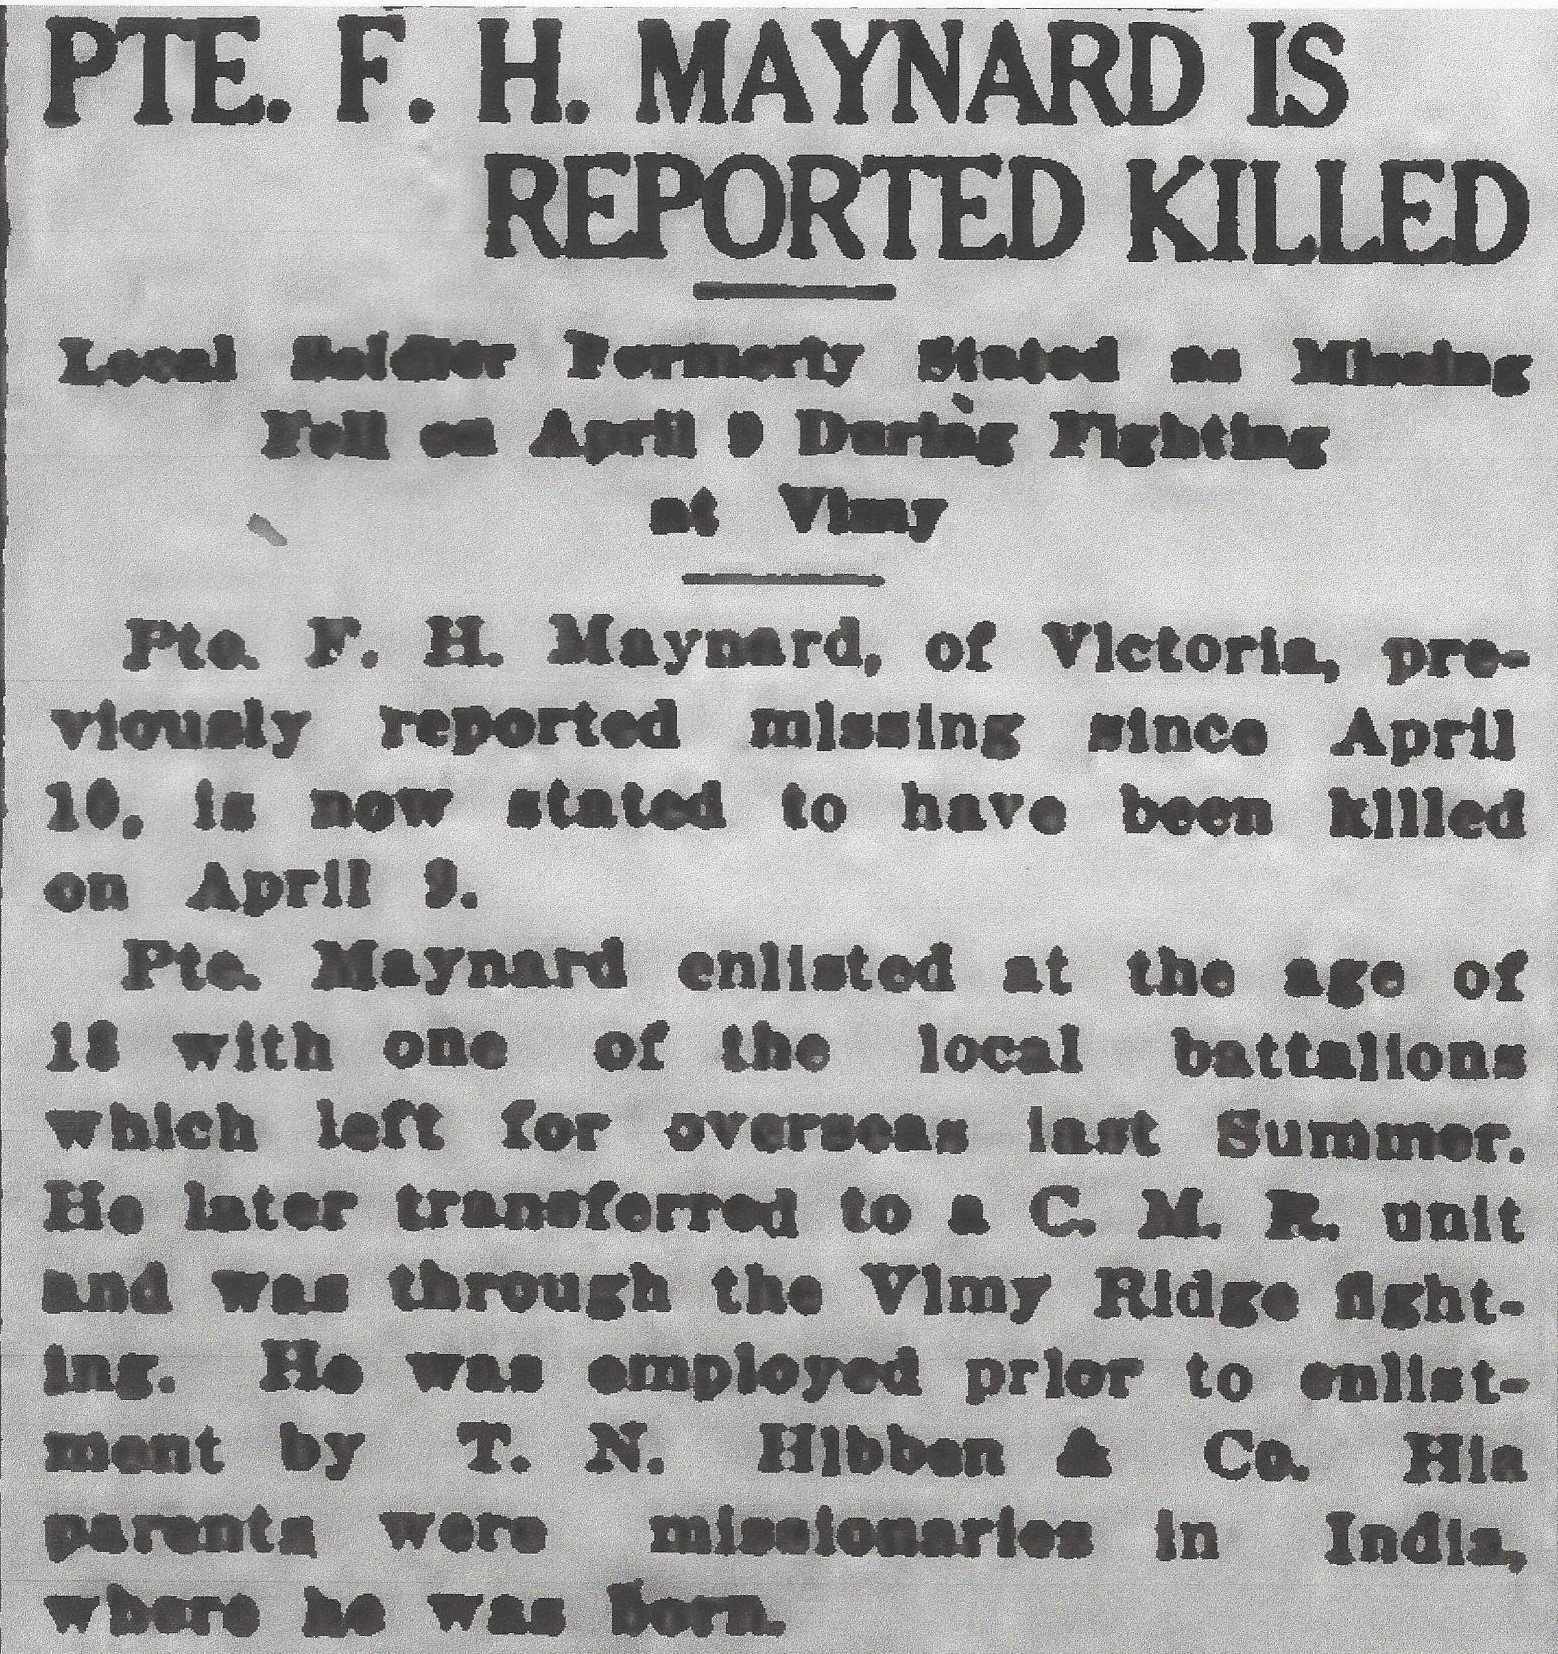 Newspaper clipping– From the Daily Colonist of May 3, 1917. Image taken from web address of http://archive.org/stream/dailycolonist59y124uvic#page/n0/mode/1up